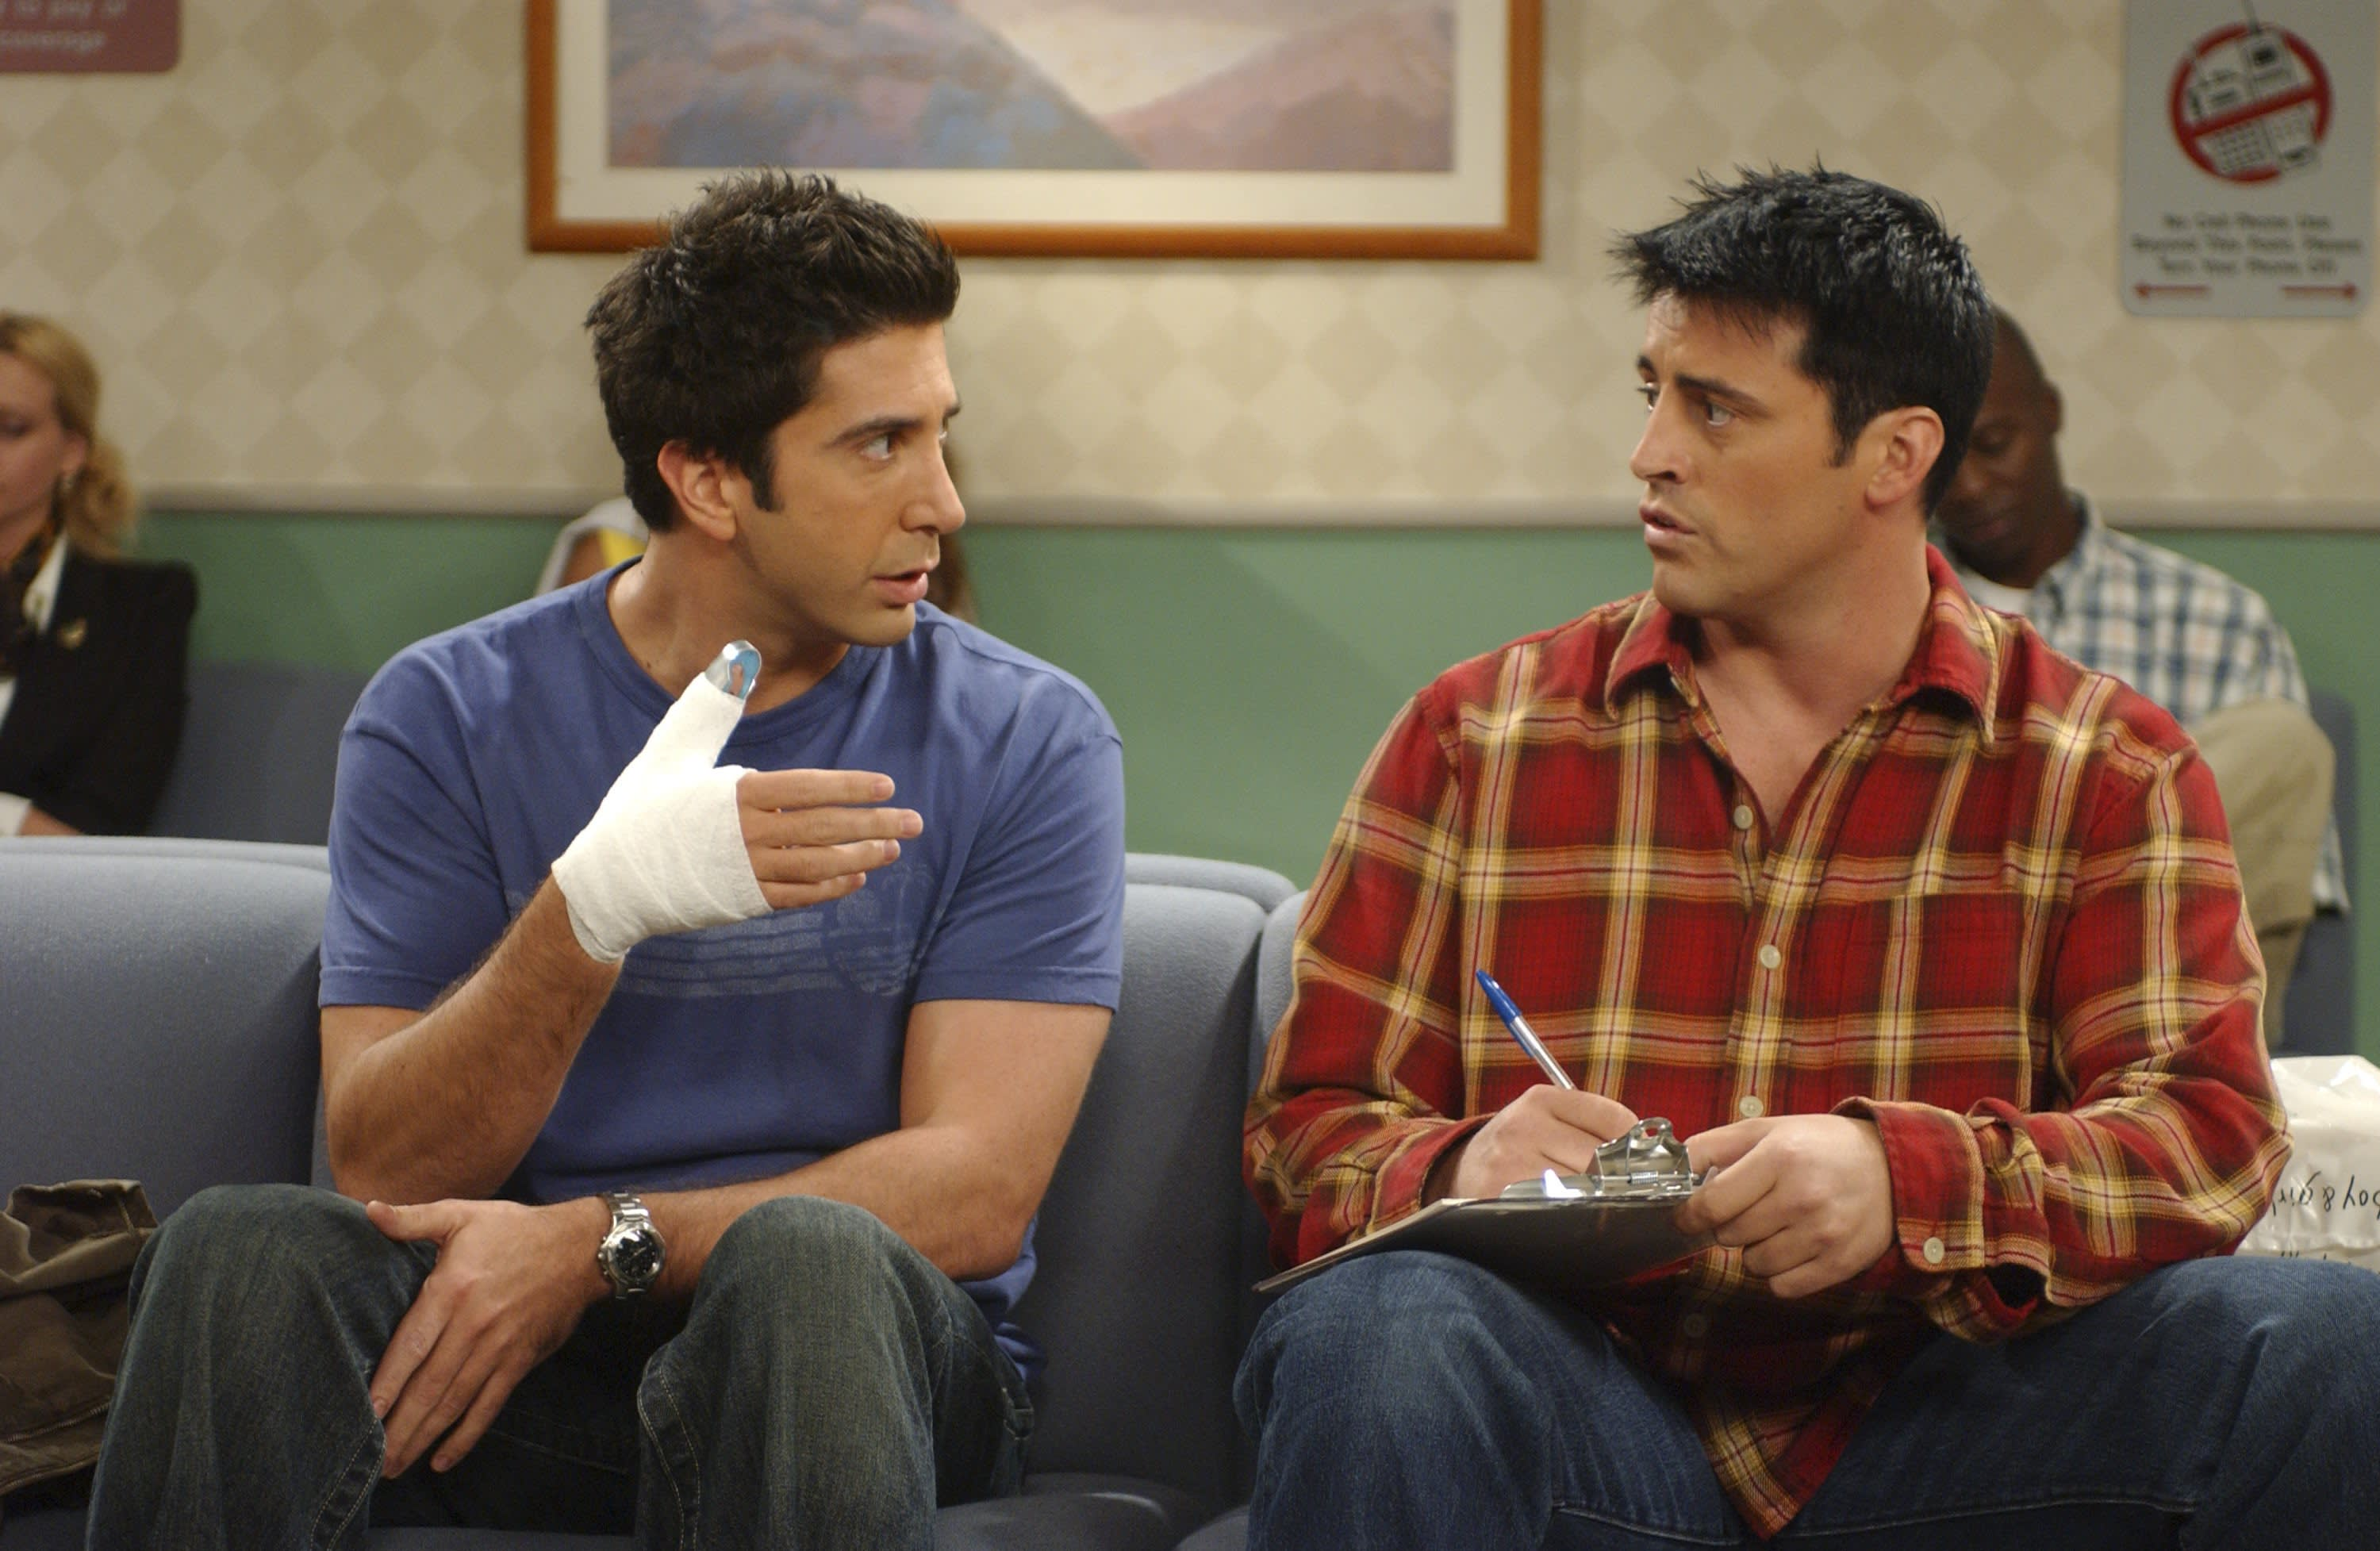 AT&T rolls out a new, super-charged streaming service with HBO shows, 'Friends' and more